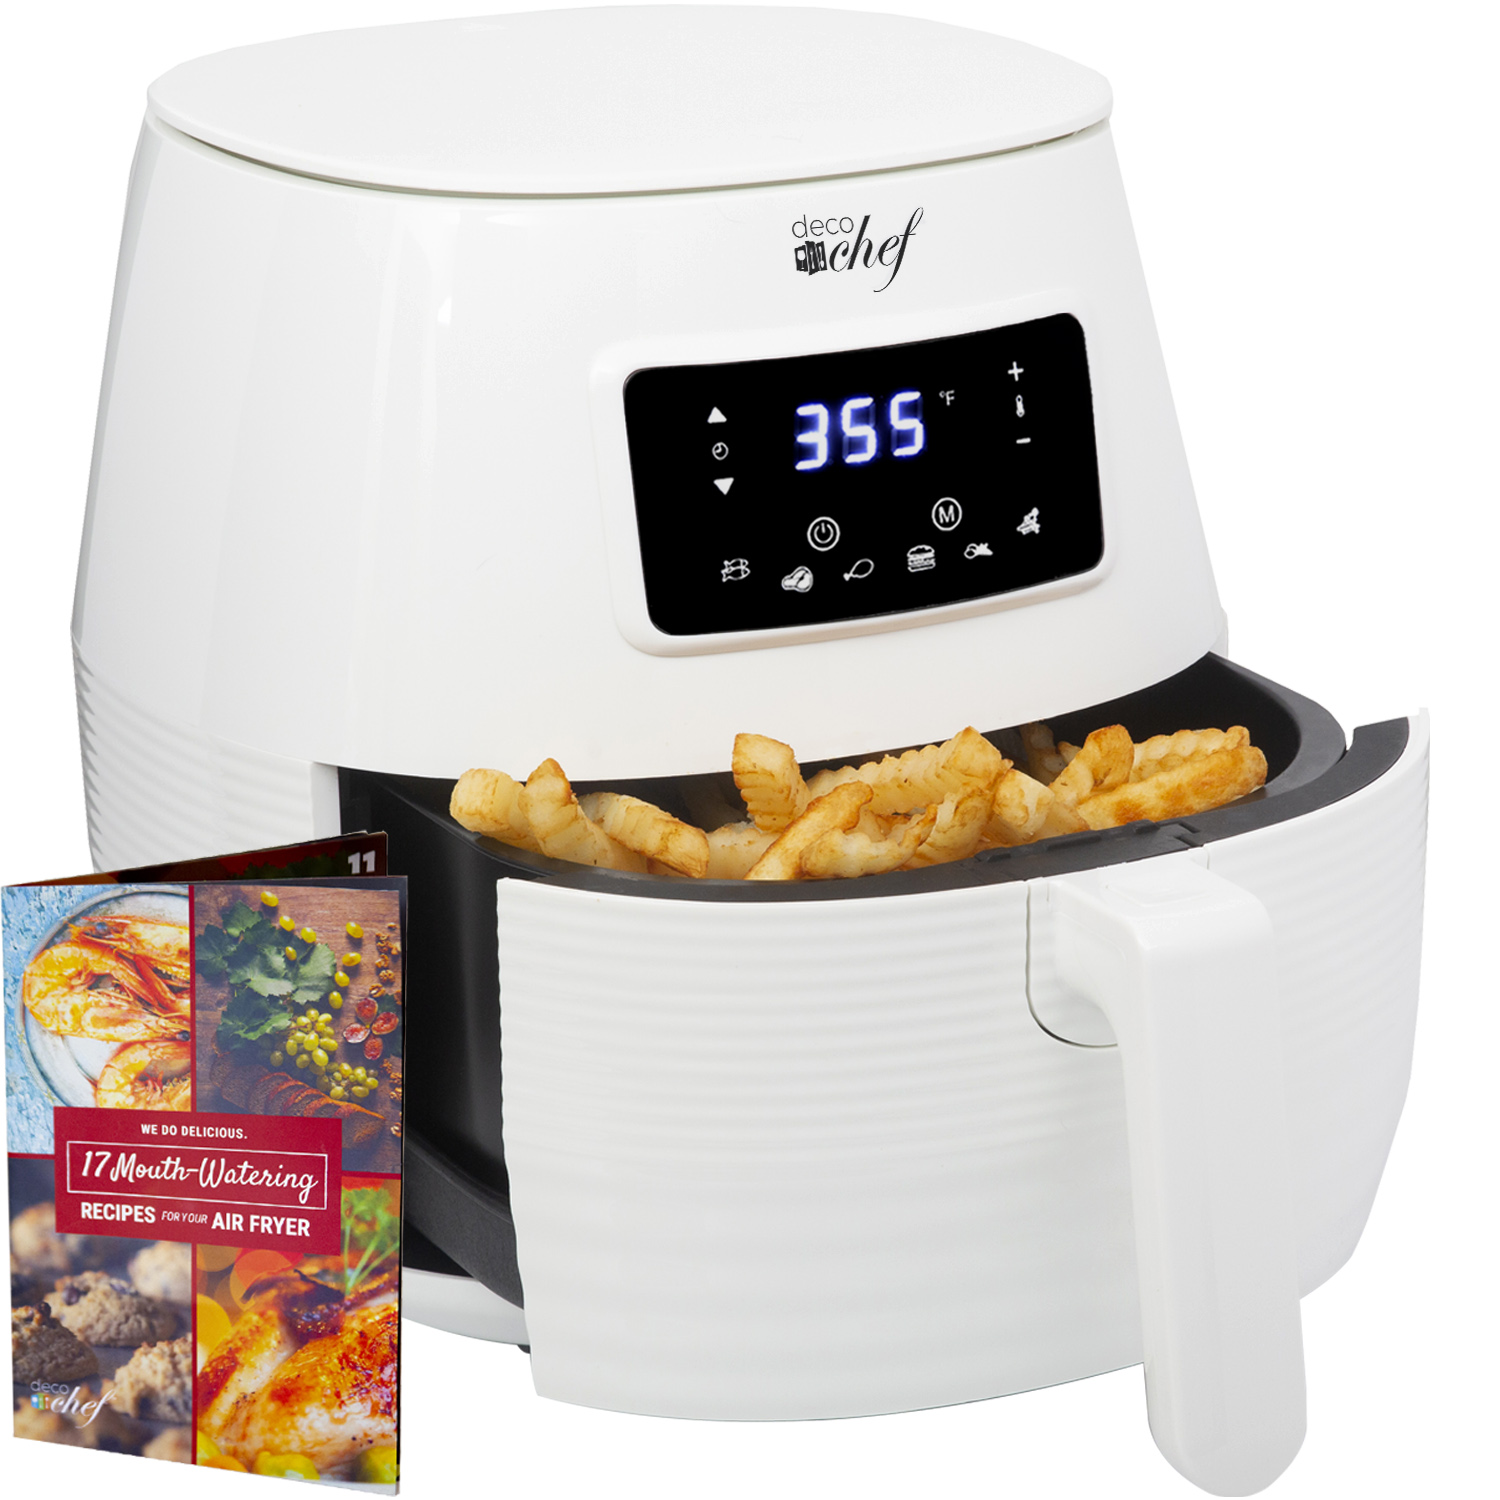 Deco Chef Digital 5.8QT Electric Air Fryer | Healthier & Fas